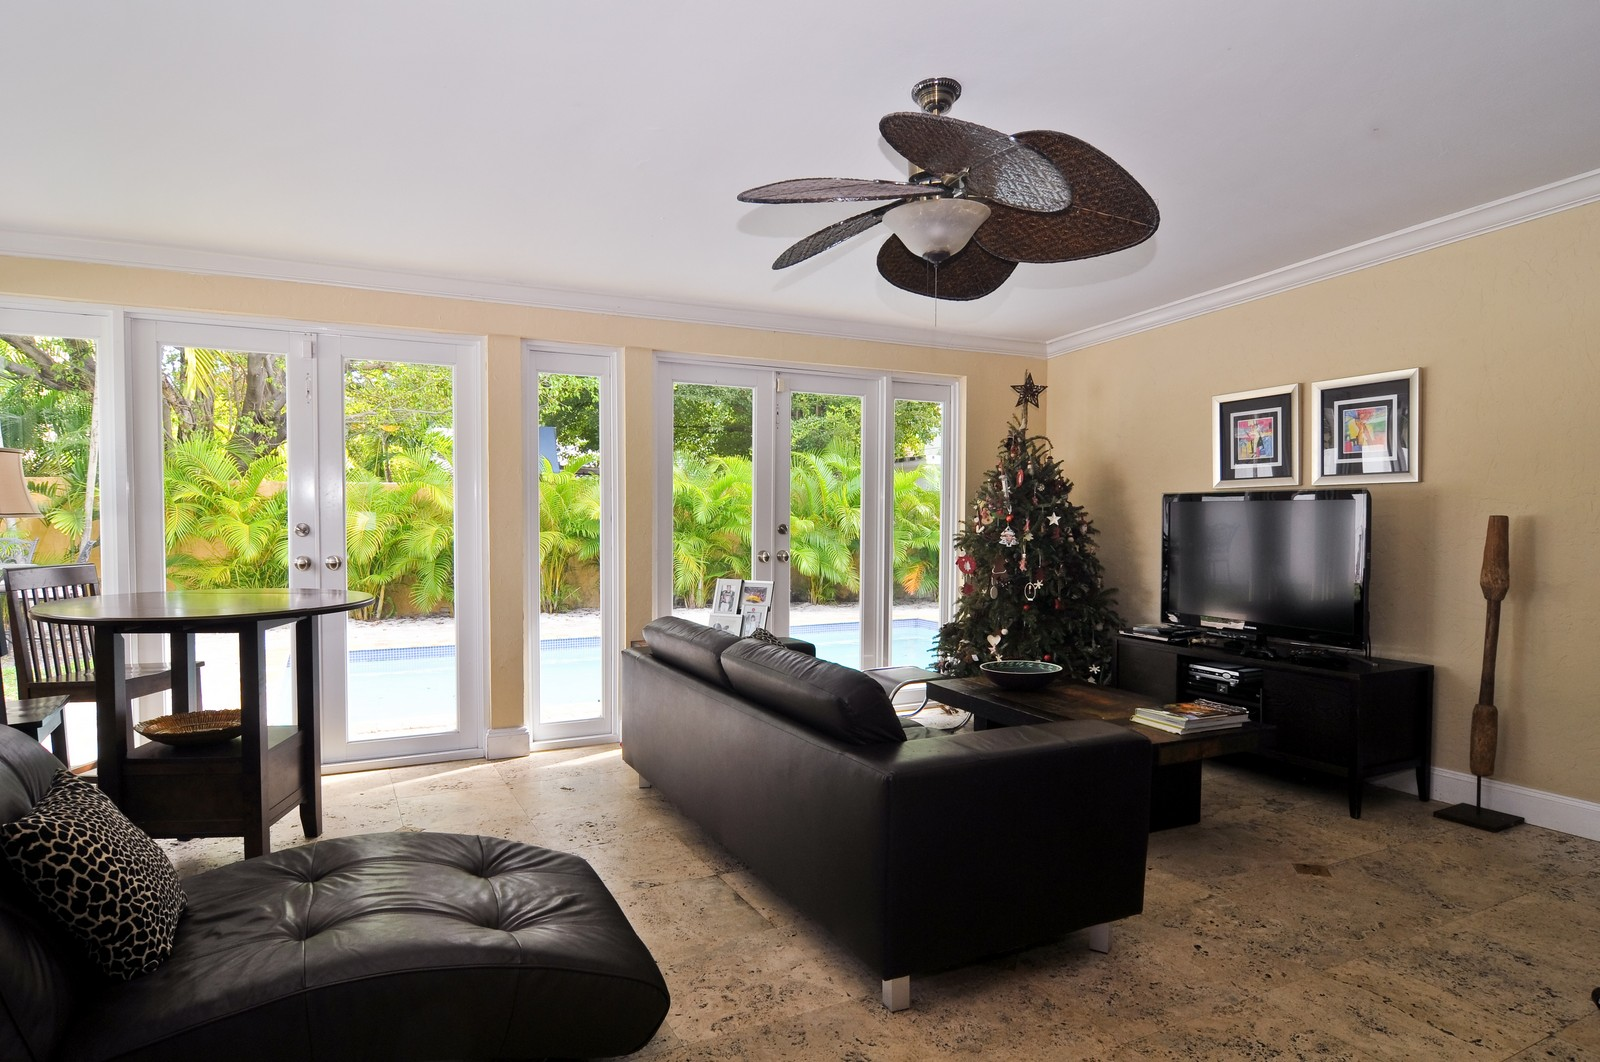 Real Estate Photography - 285 Glenrigde Rd, Key Biscayne, FL, 33149 - Family Room